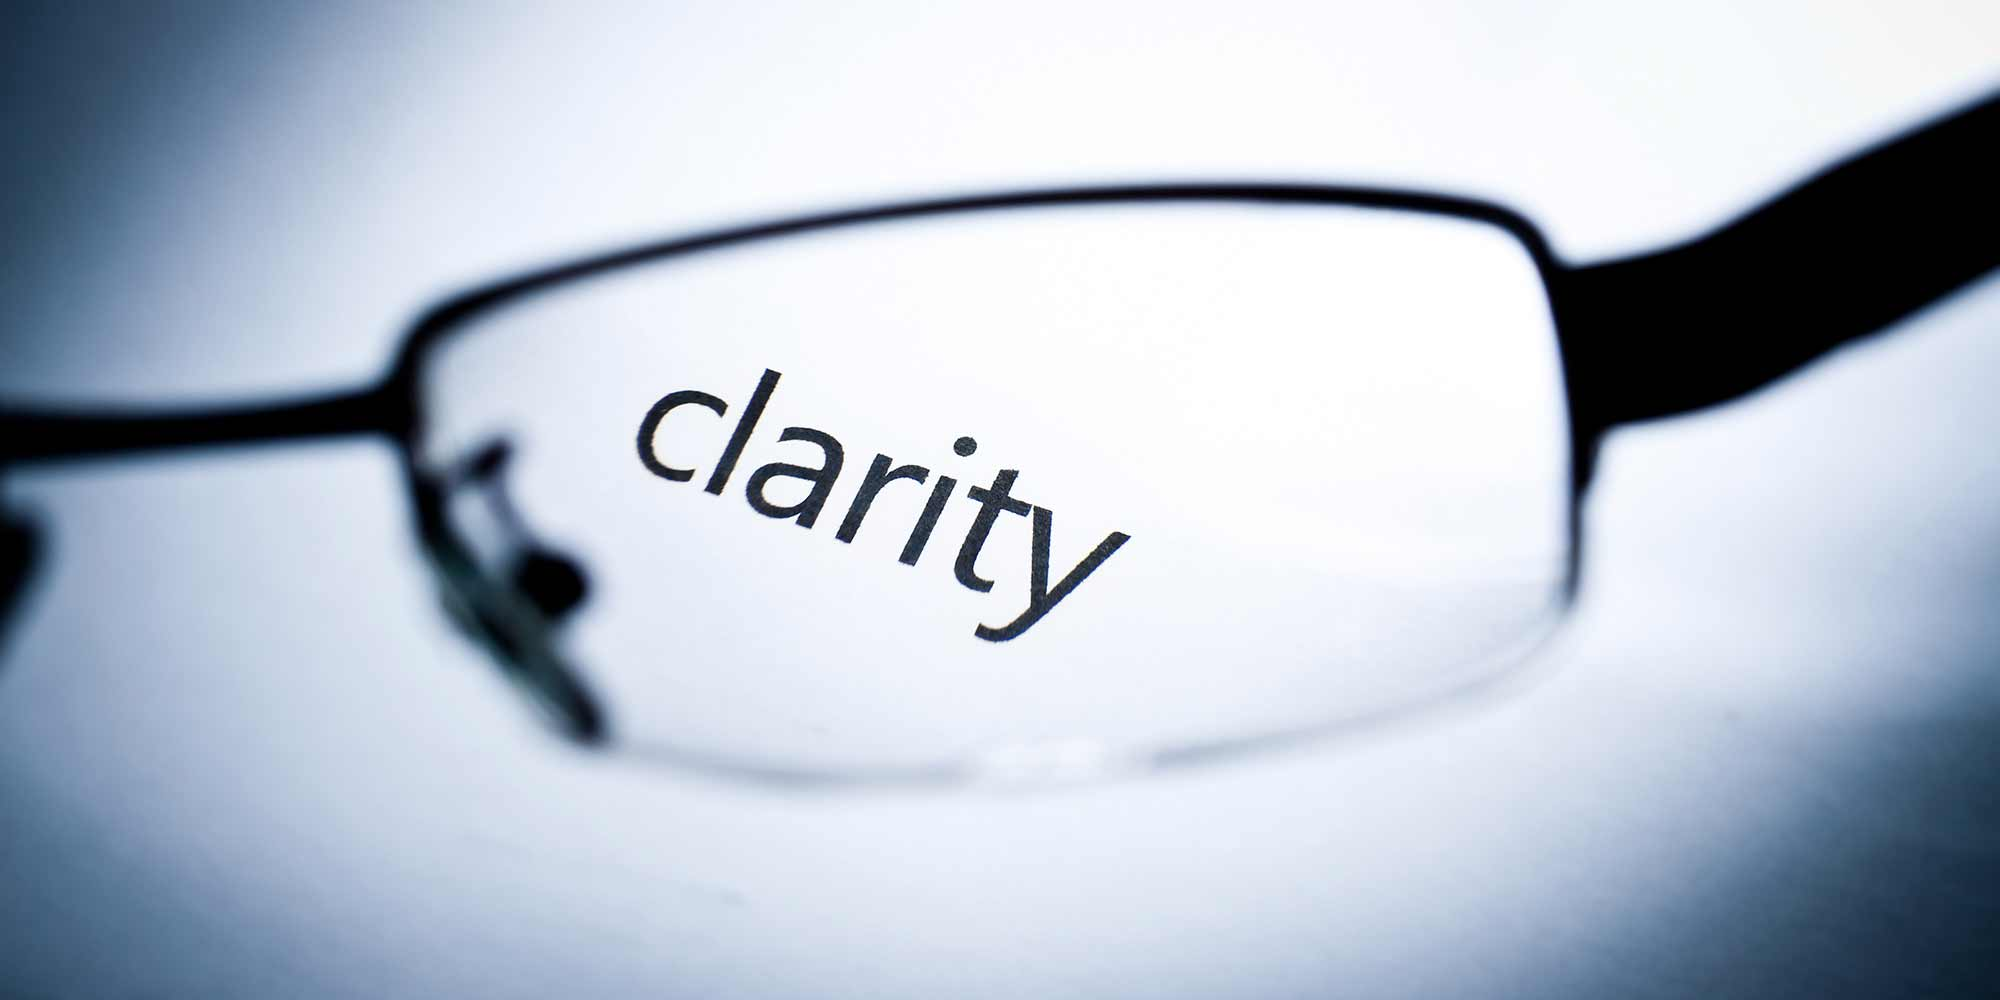 The word Clarity viewed through a spectacle lens